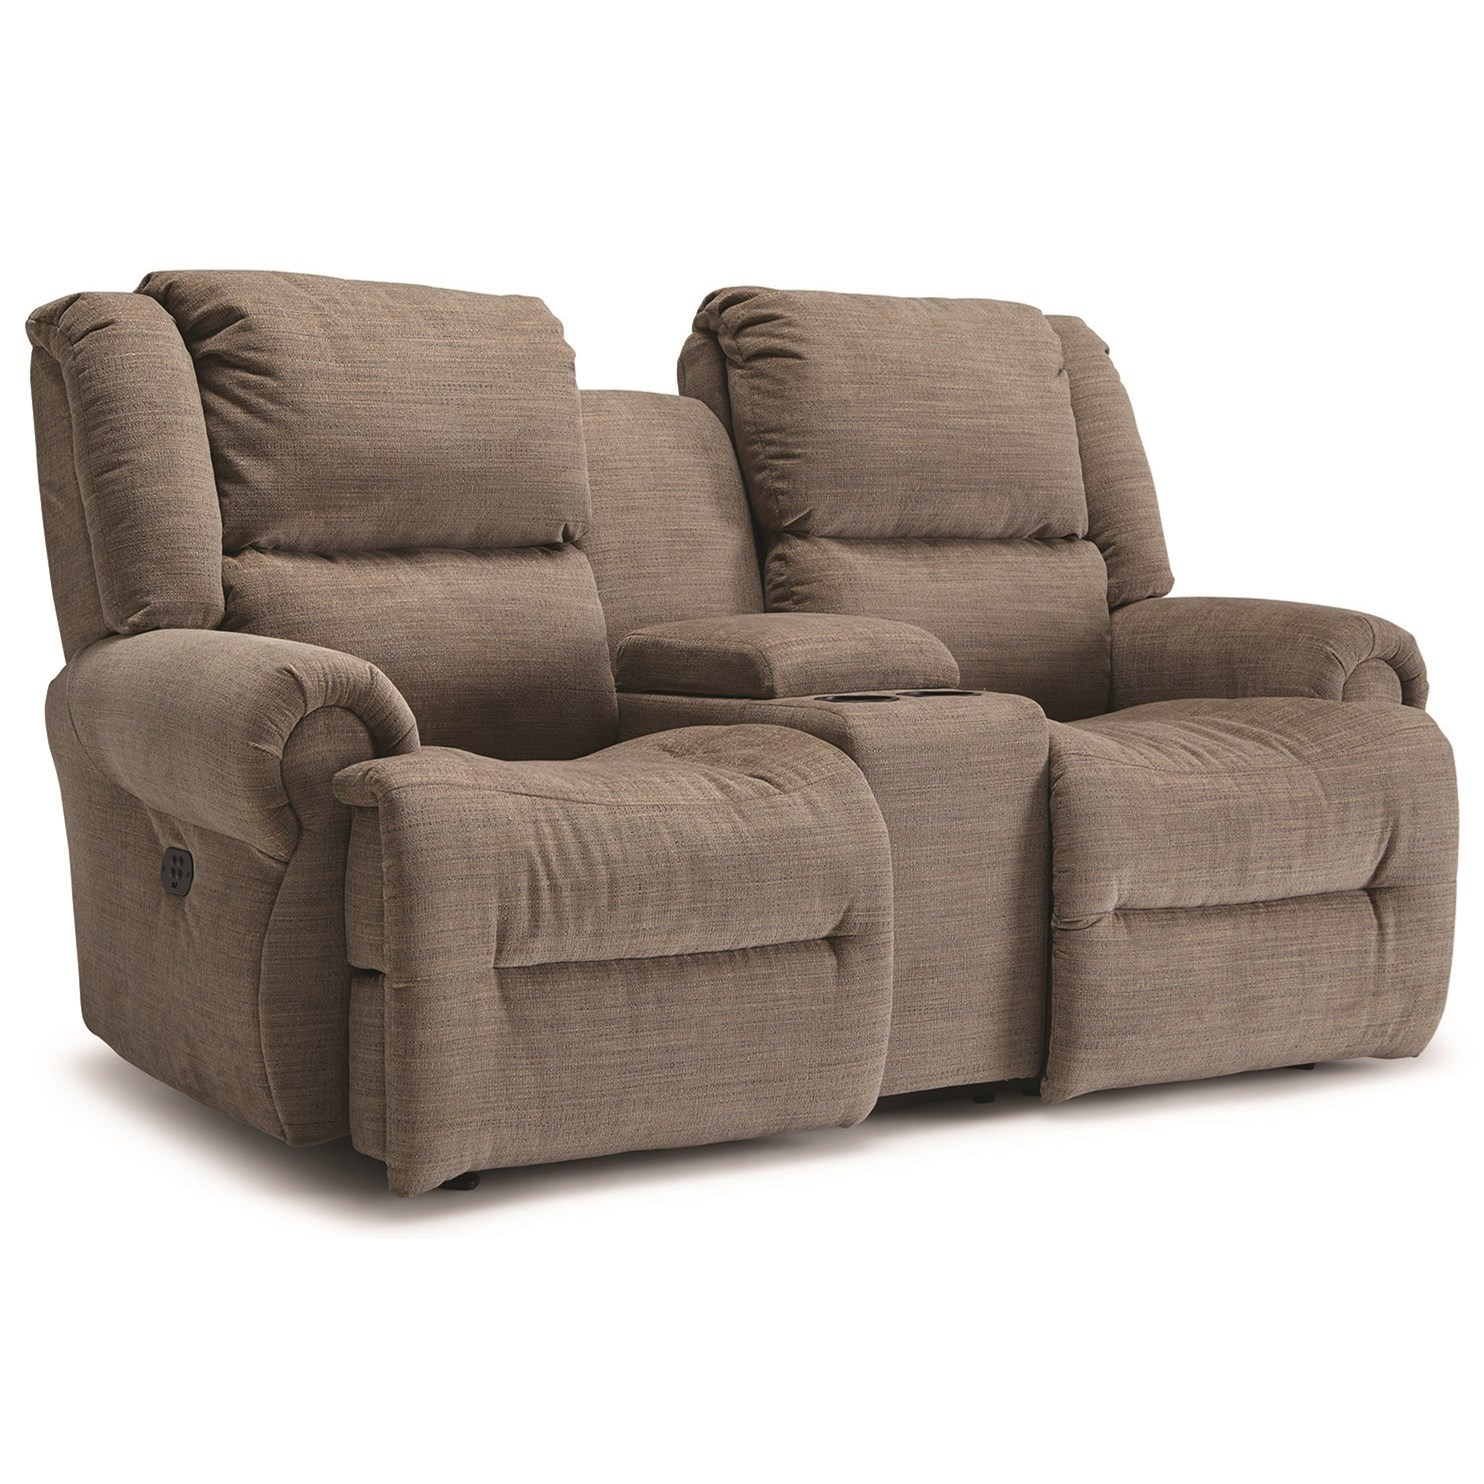 Sofa Relax Con Usb Studio 47 Genet Power Space Saver Reclining Loveseat With